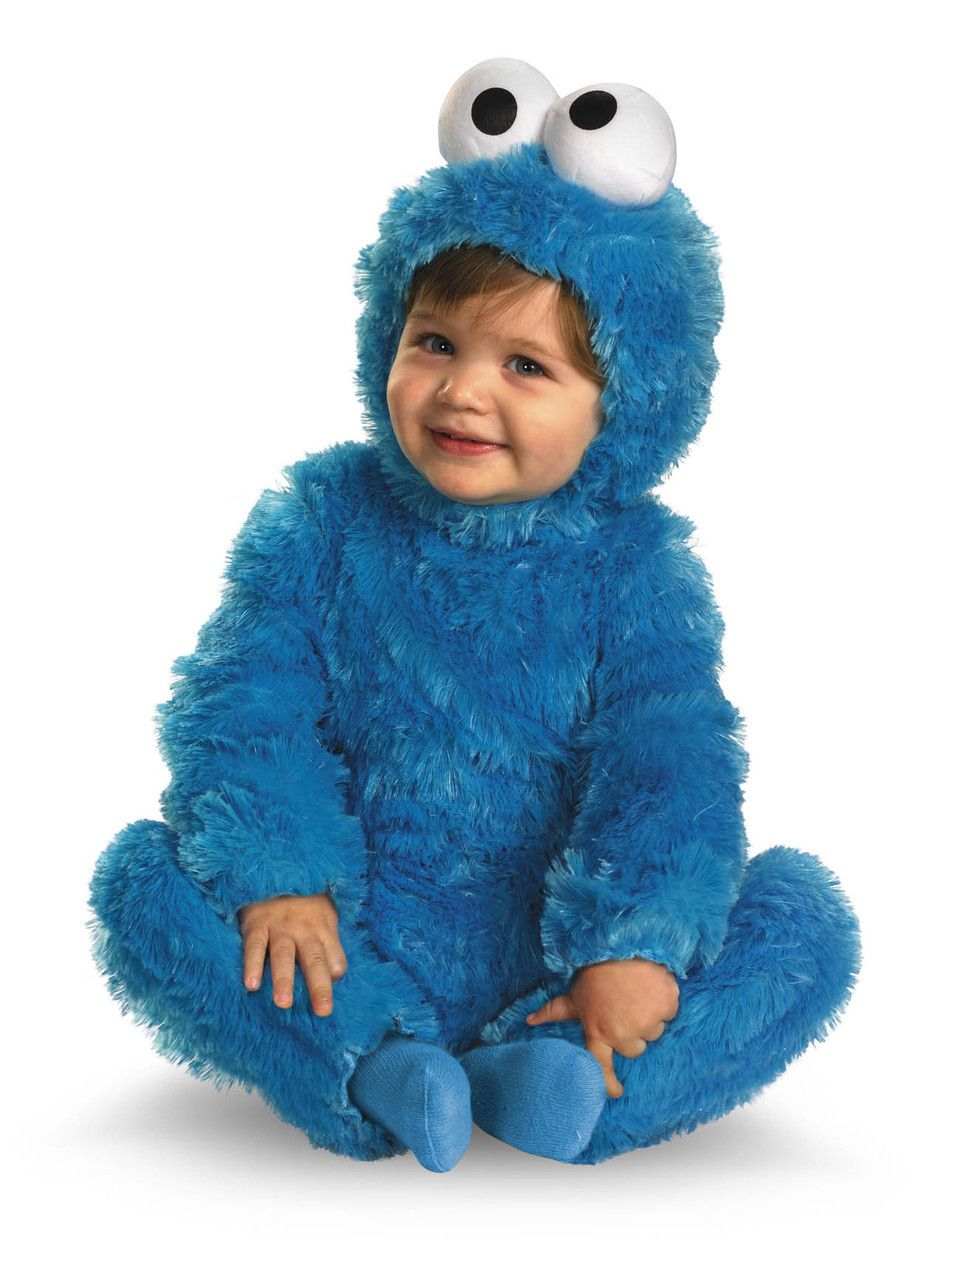 Toddler\u0027s Cookie Monster Sesame Street Costume